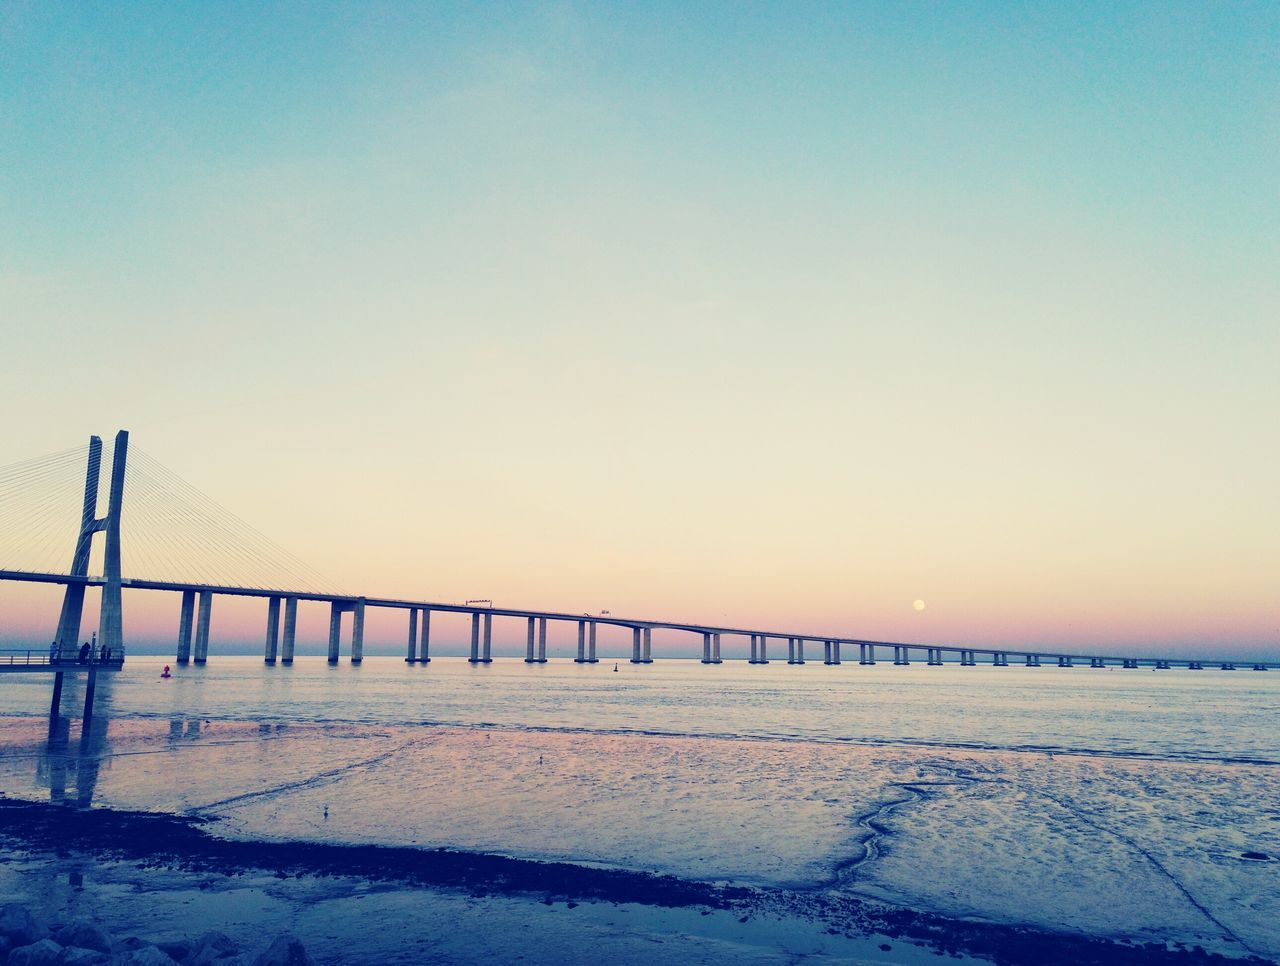 Sunset Clear Sky Sky Bridge - Man Made Structure No People Nature Water Sand Horizon Over Water Evening Sky Lisboa, Portugal First Eyeem Photo